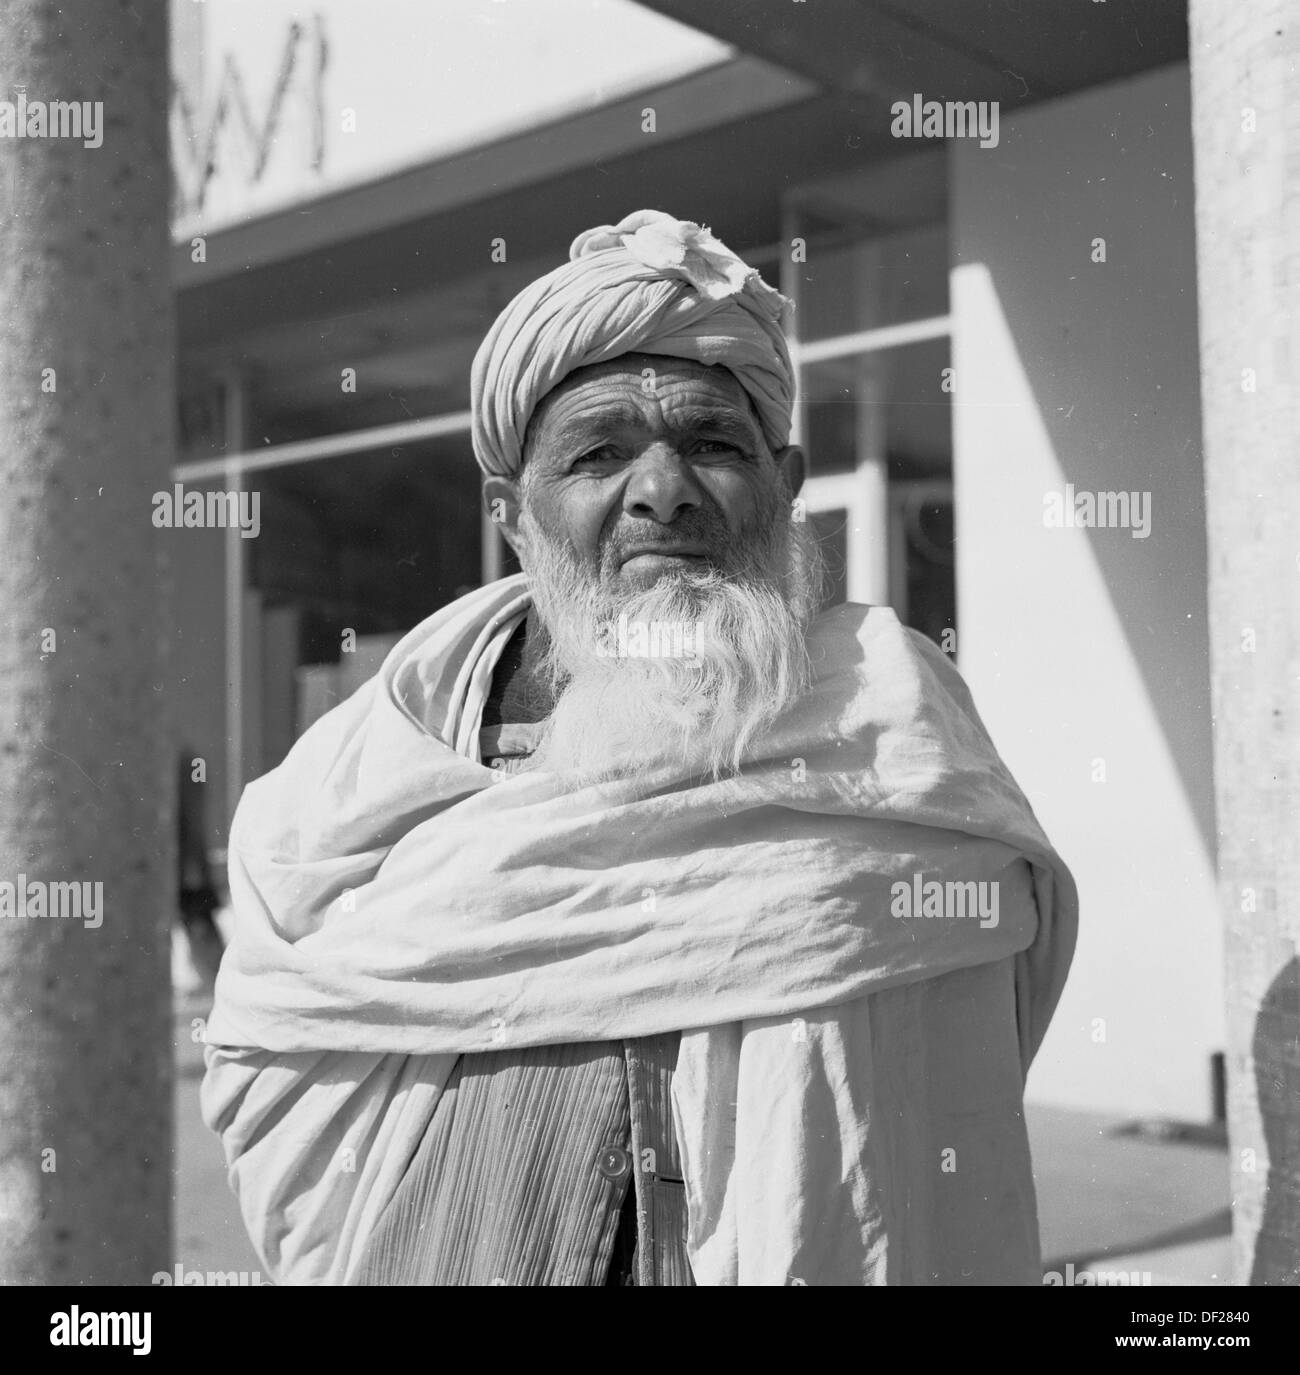 Historical picture from1950s by J Allan Cash of an elderly bearded Afghan male in Kabul, Afghanistan with his robes and turban. - Stock Image